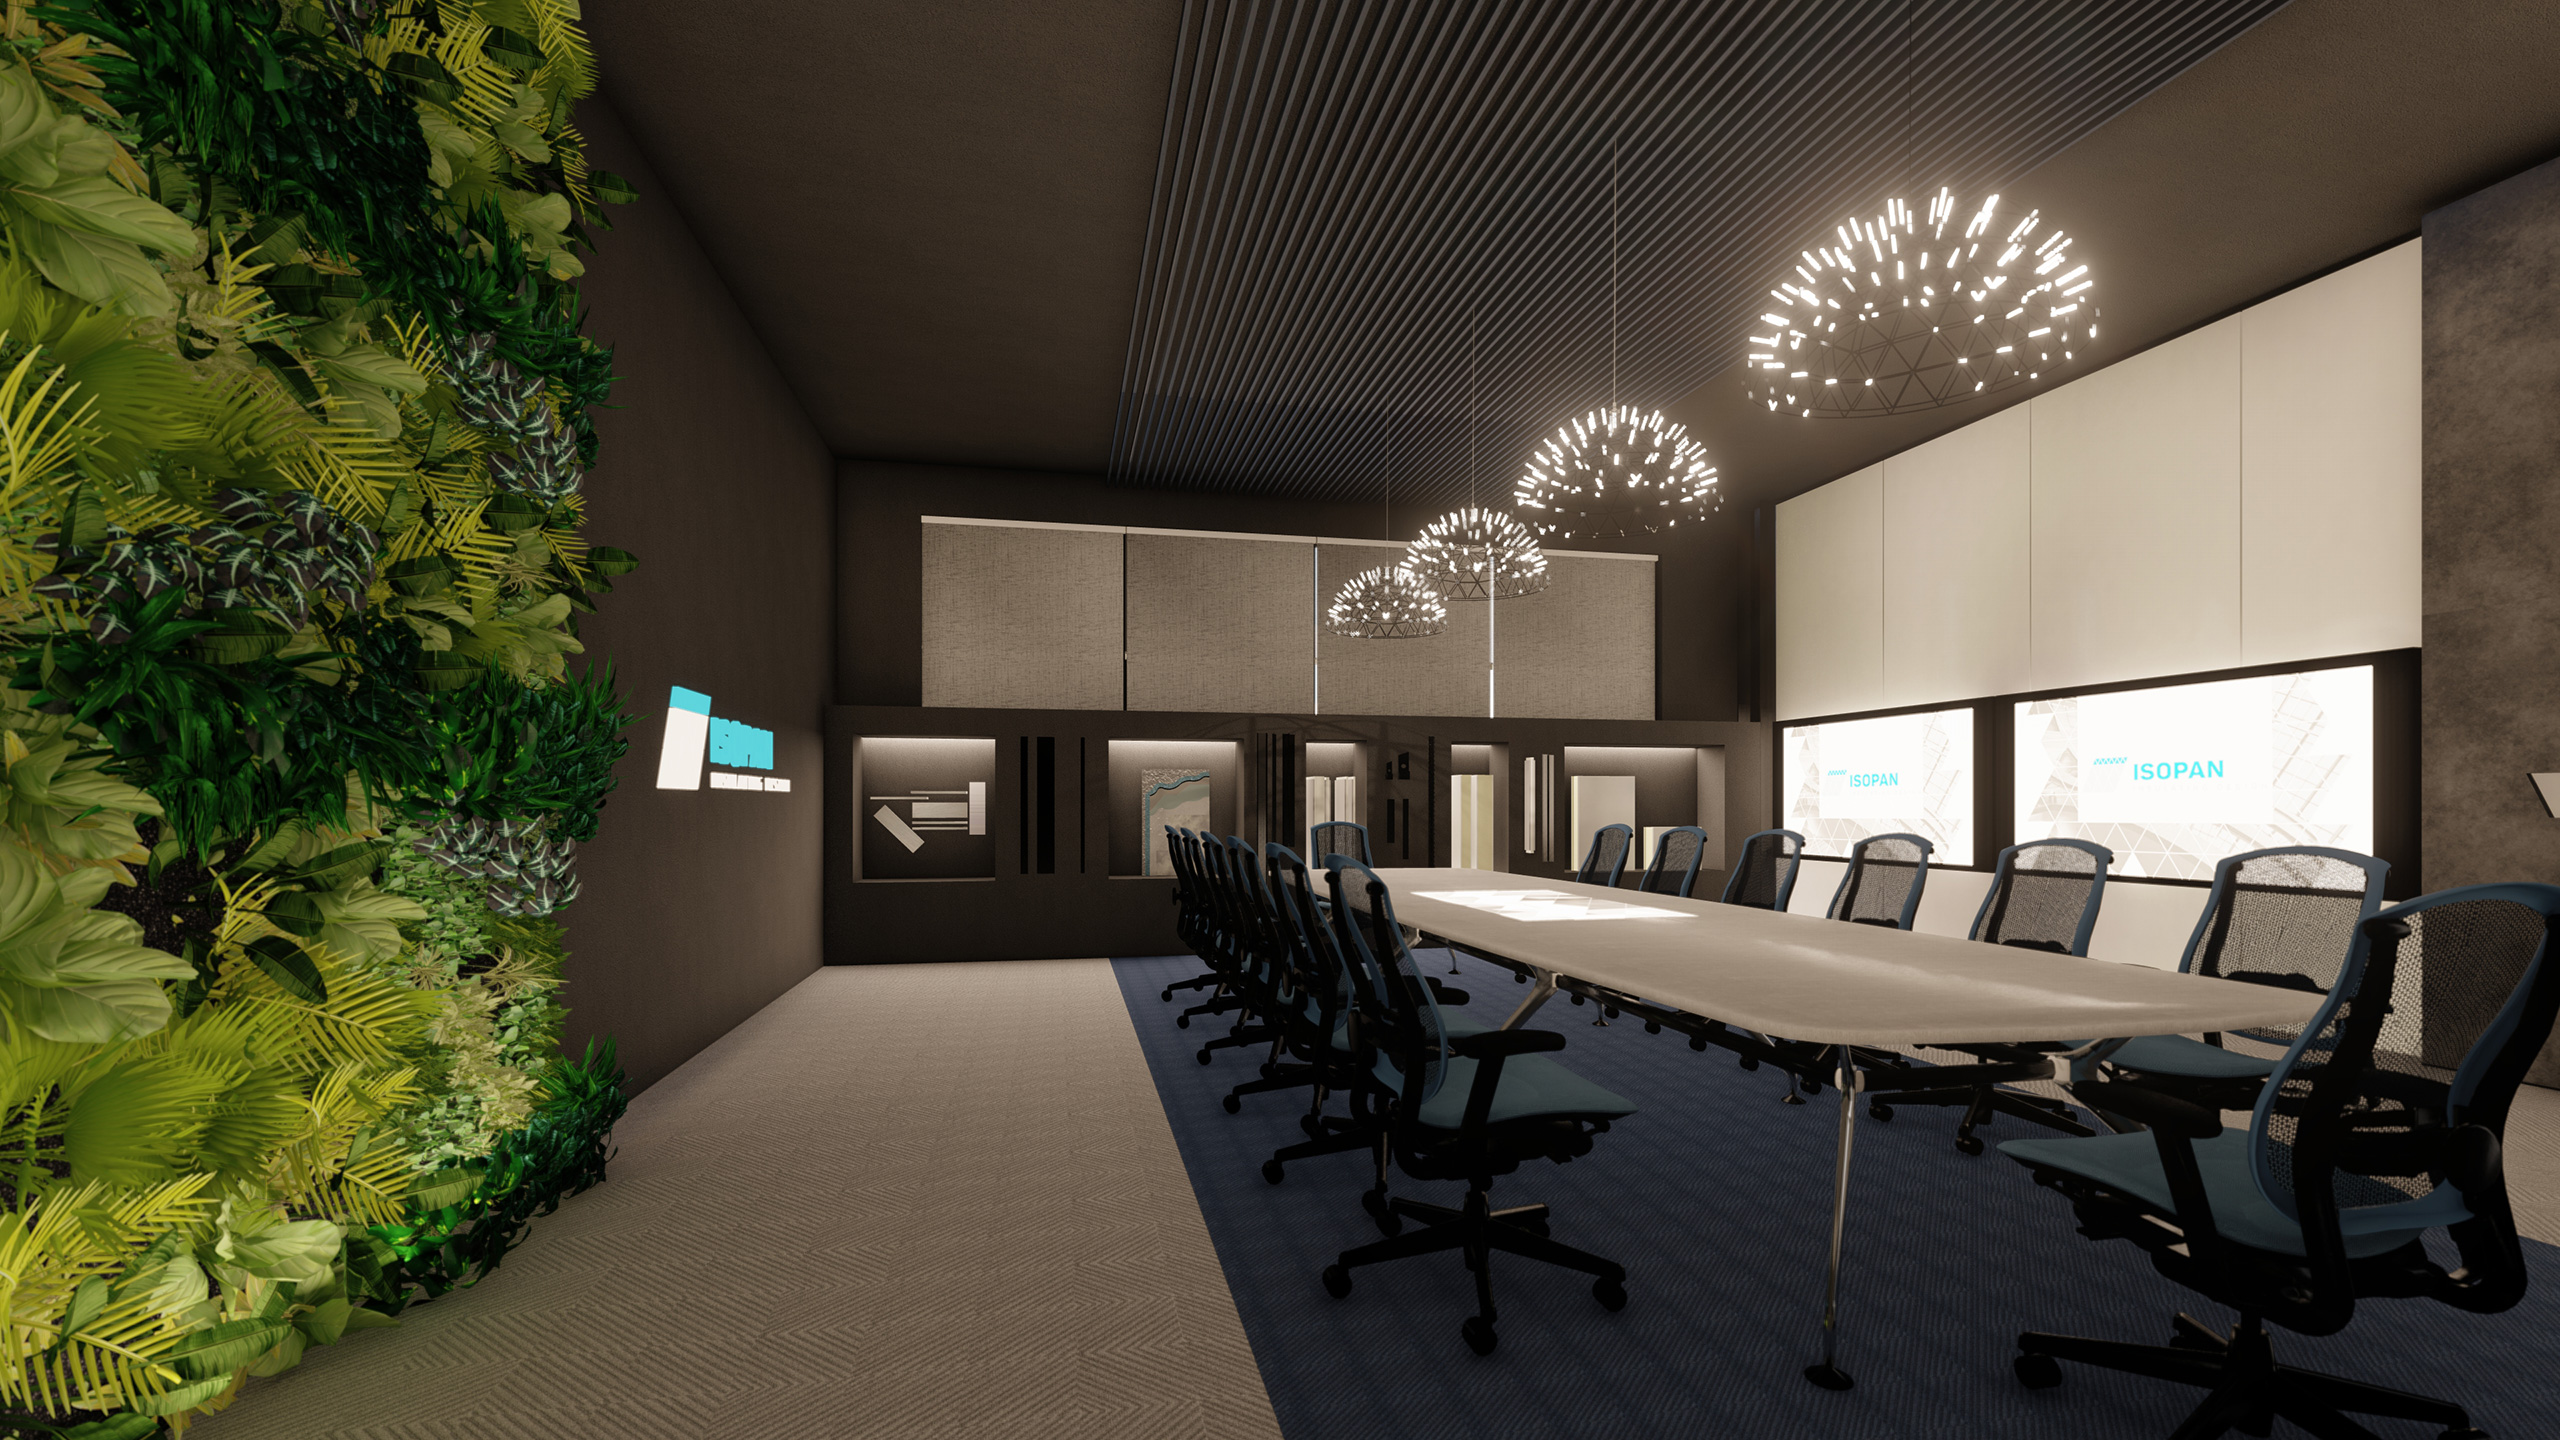 Office-Isopan-conference-room_9—Photo